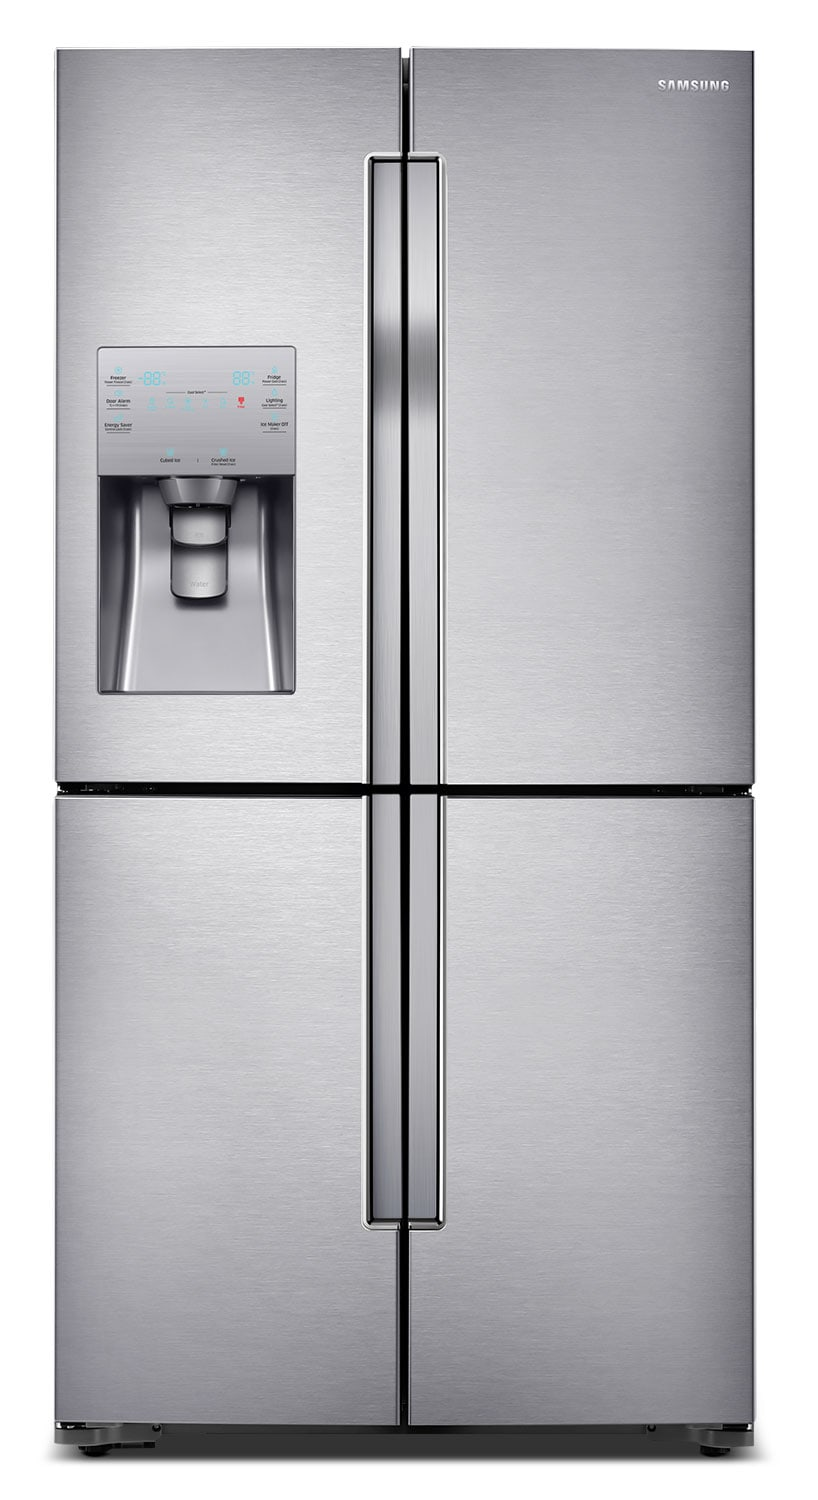 Samsung 22.5 Cu. Ft. French-Door Refrigerator – RF23J9011SR